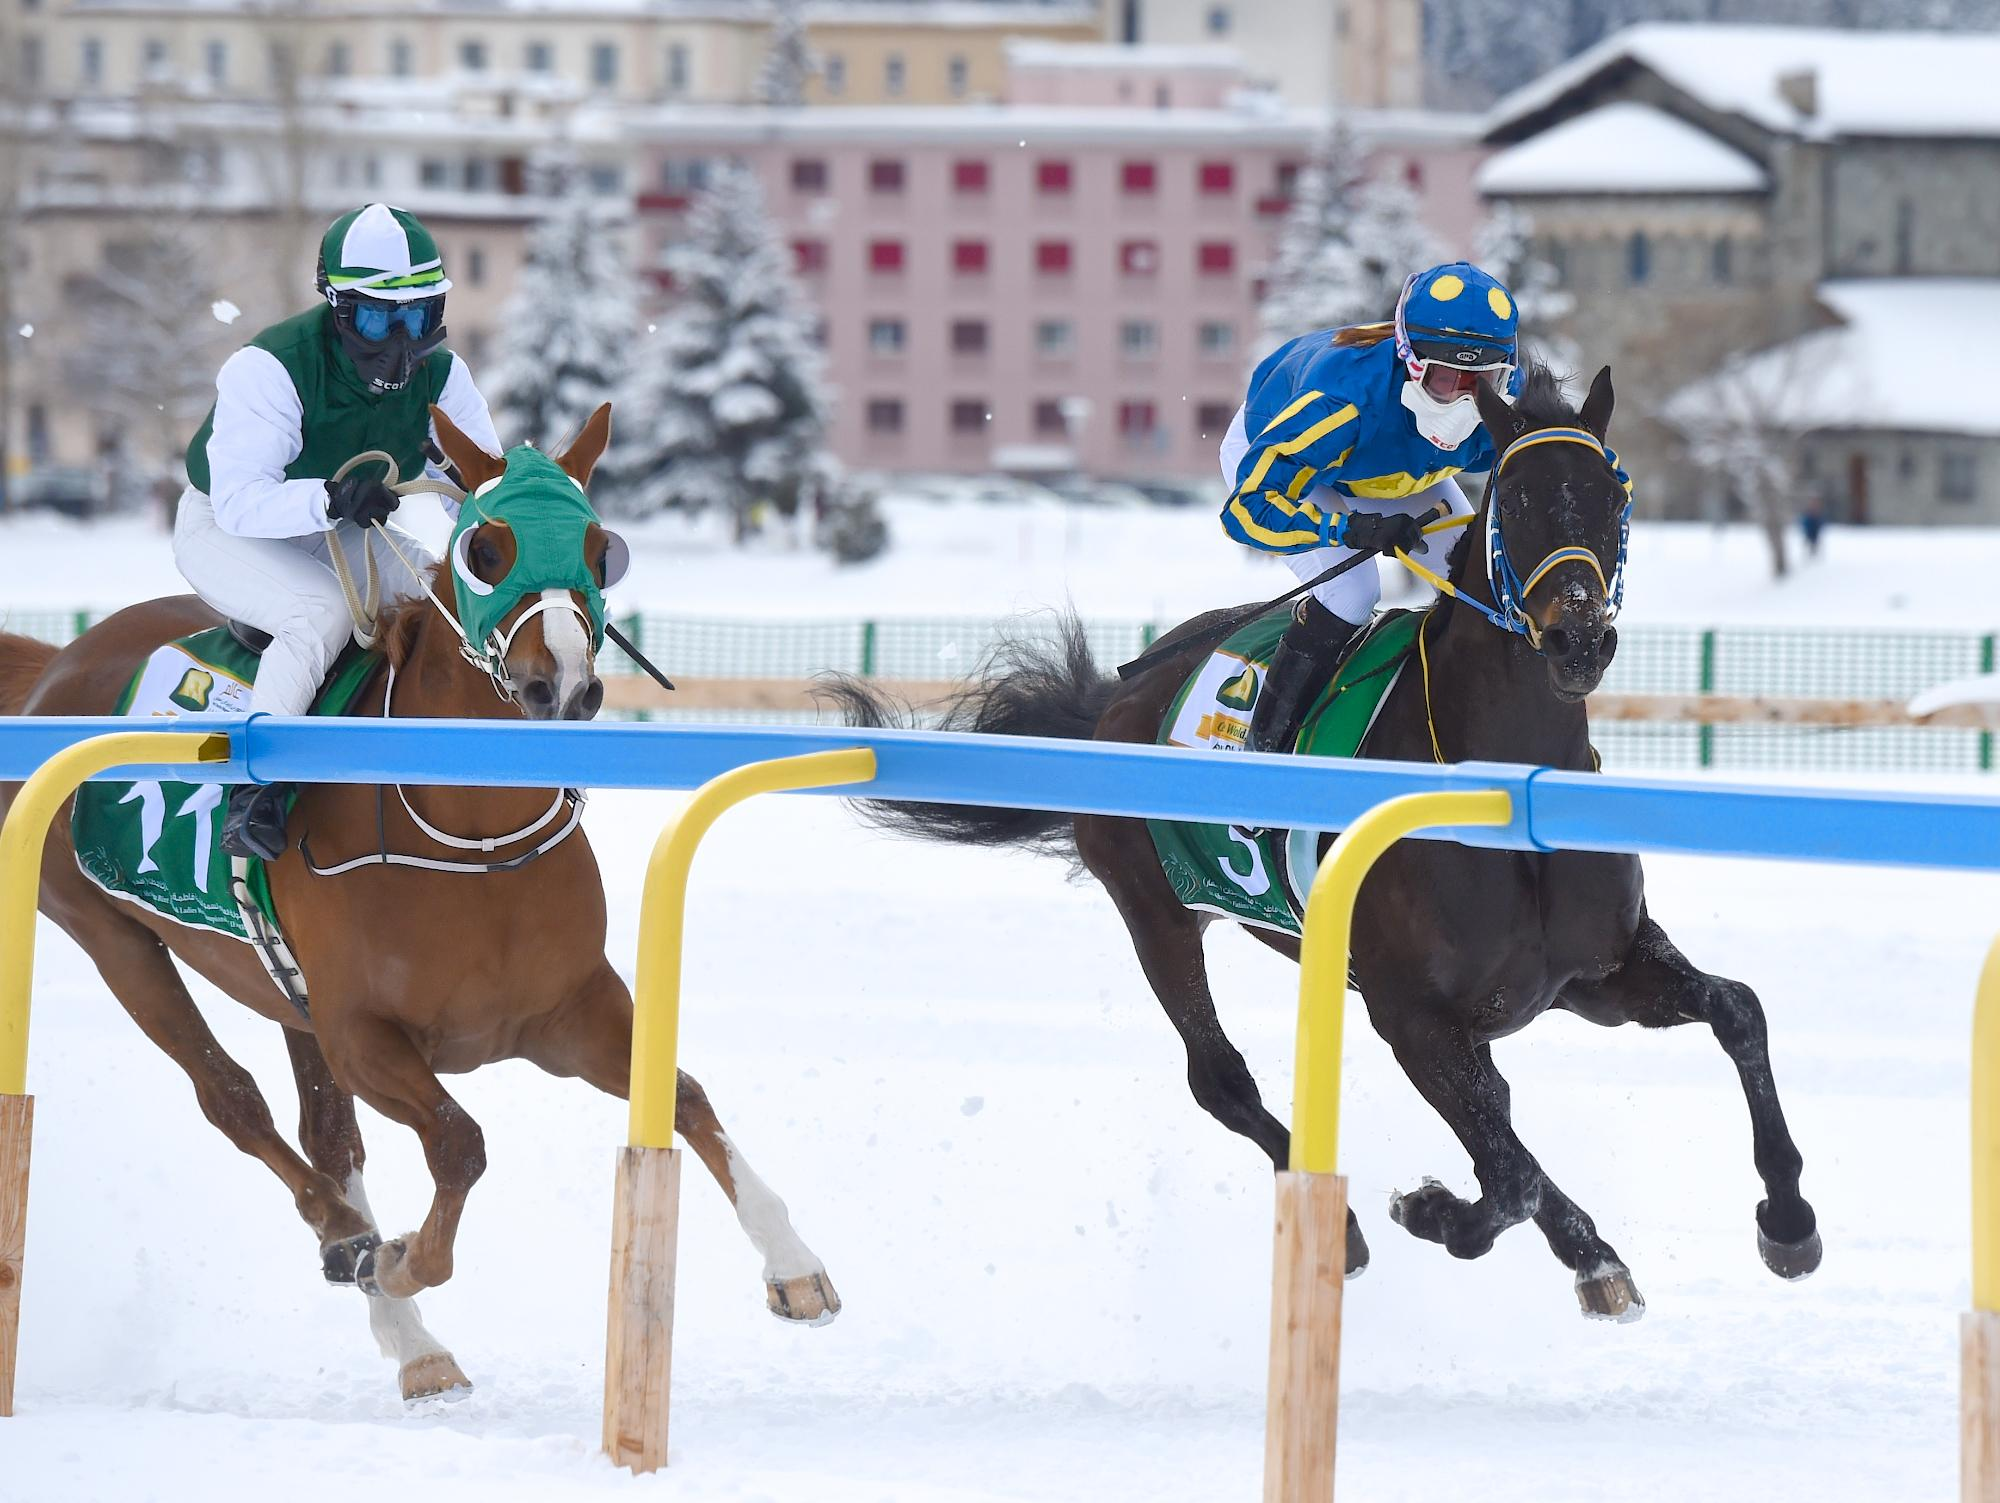 Horses race in the snow in Switzerland.